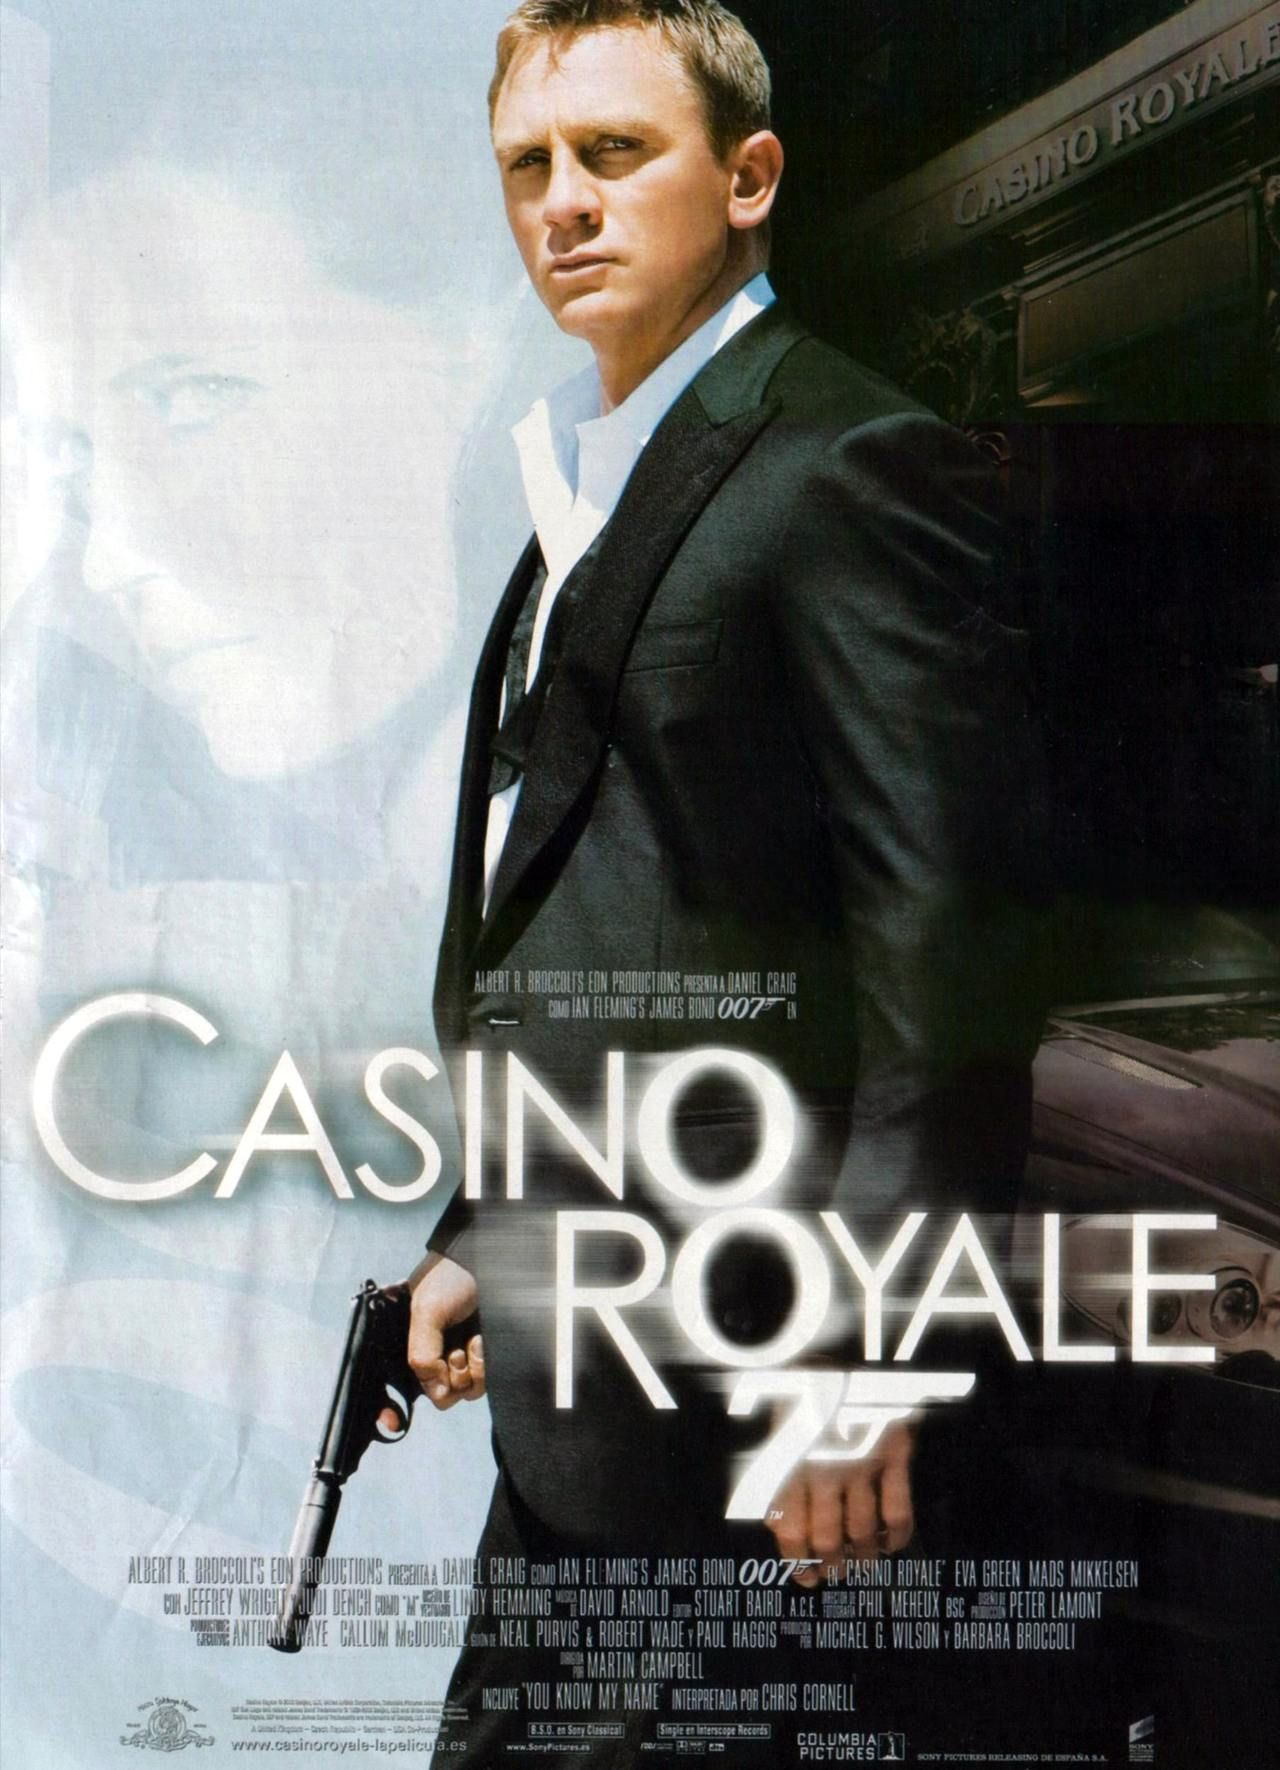 Casino royale streaming evan gamble vampire diaries